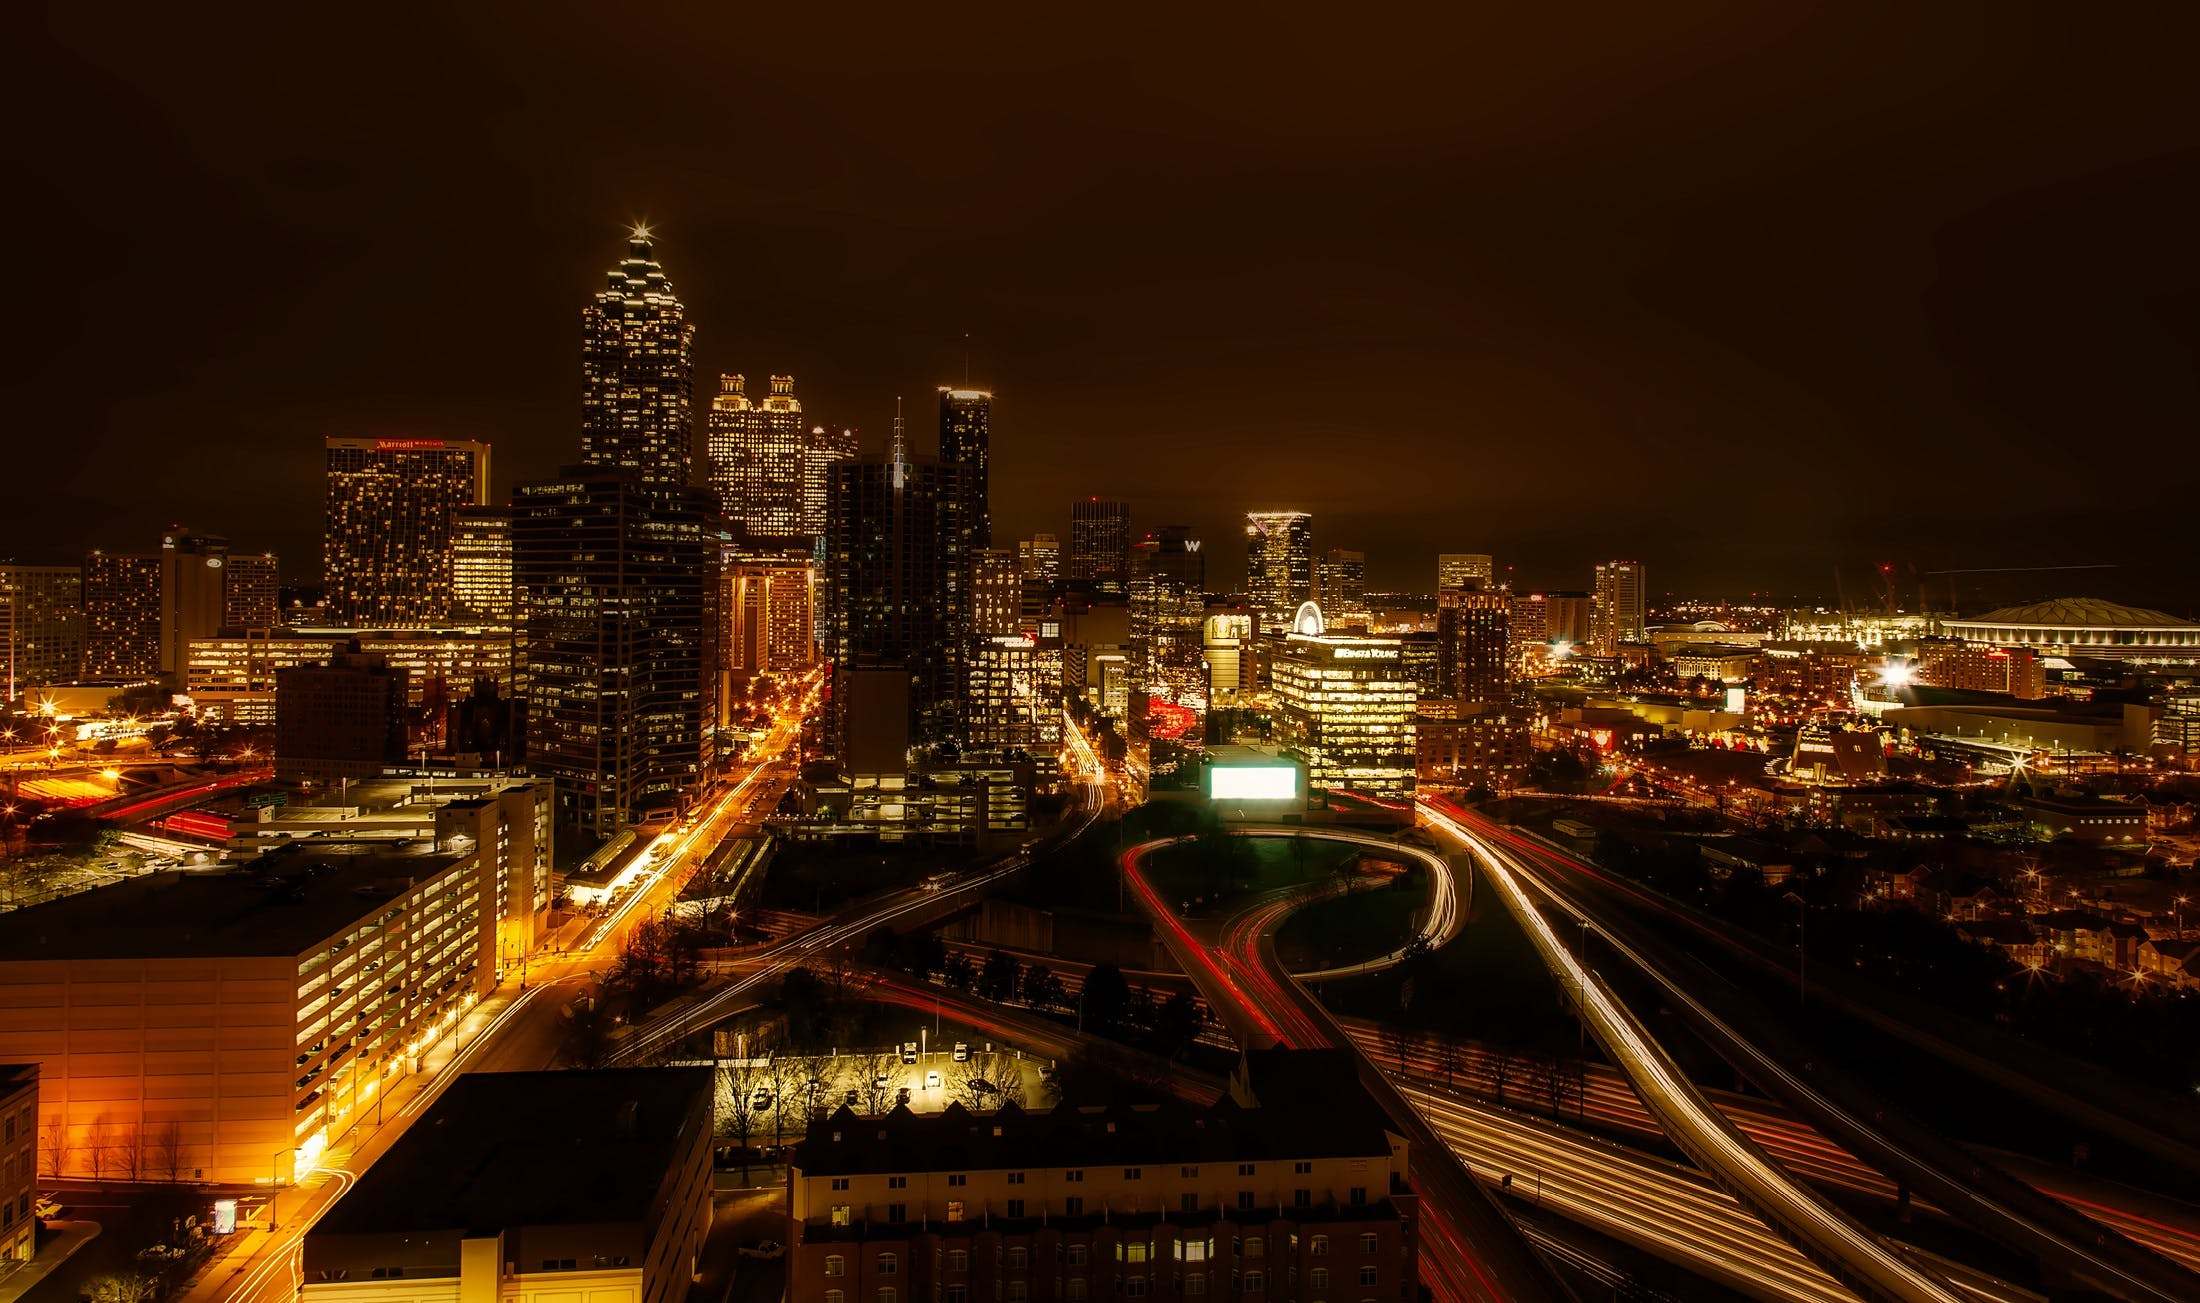 Time-lapse Photography of Cityscape